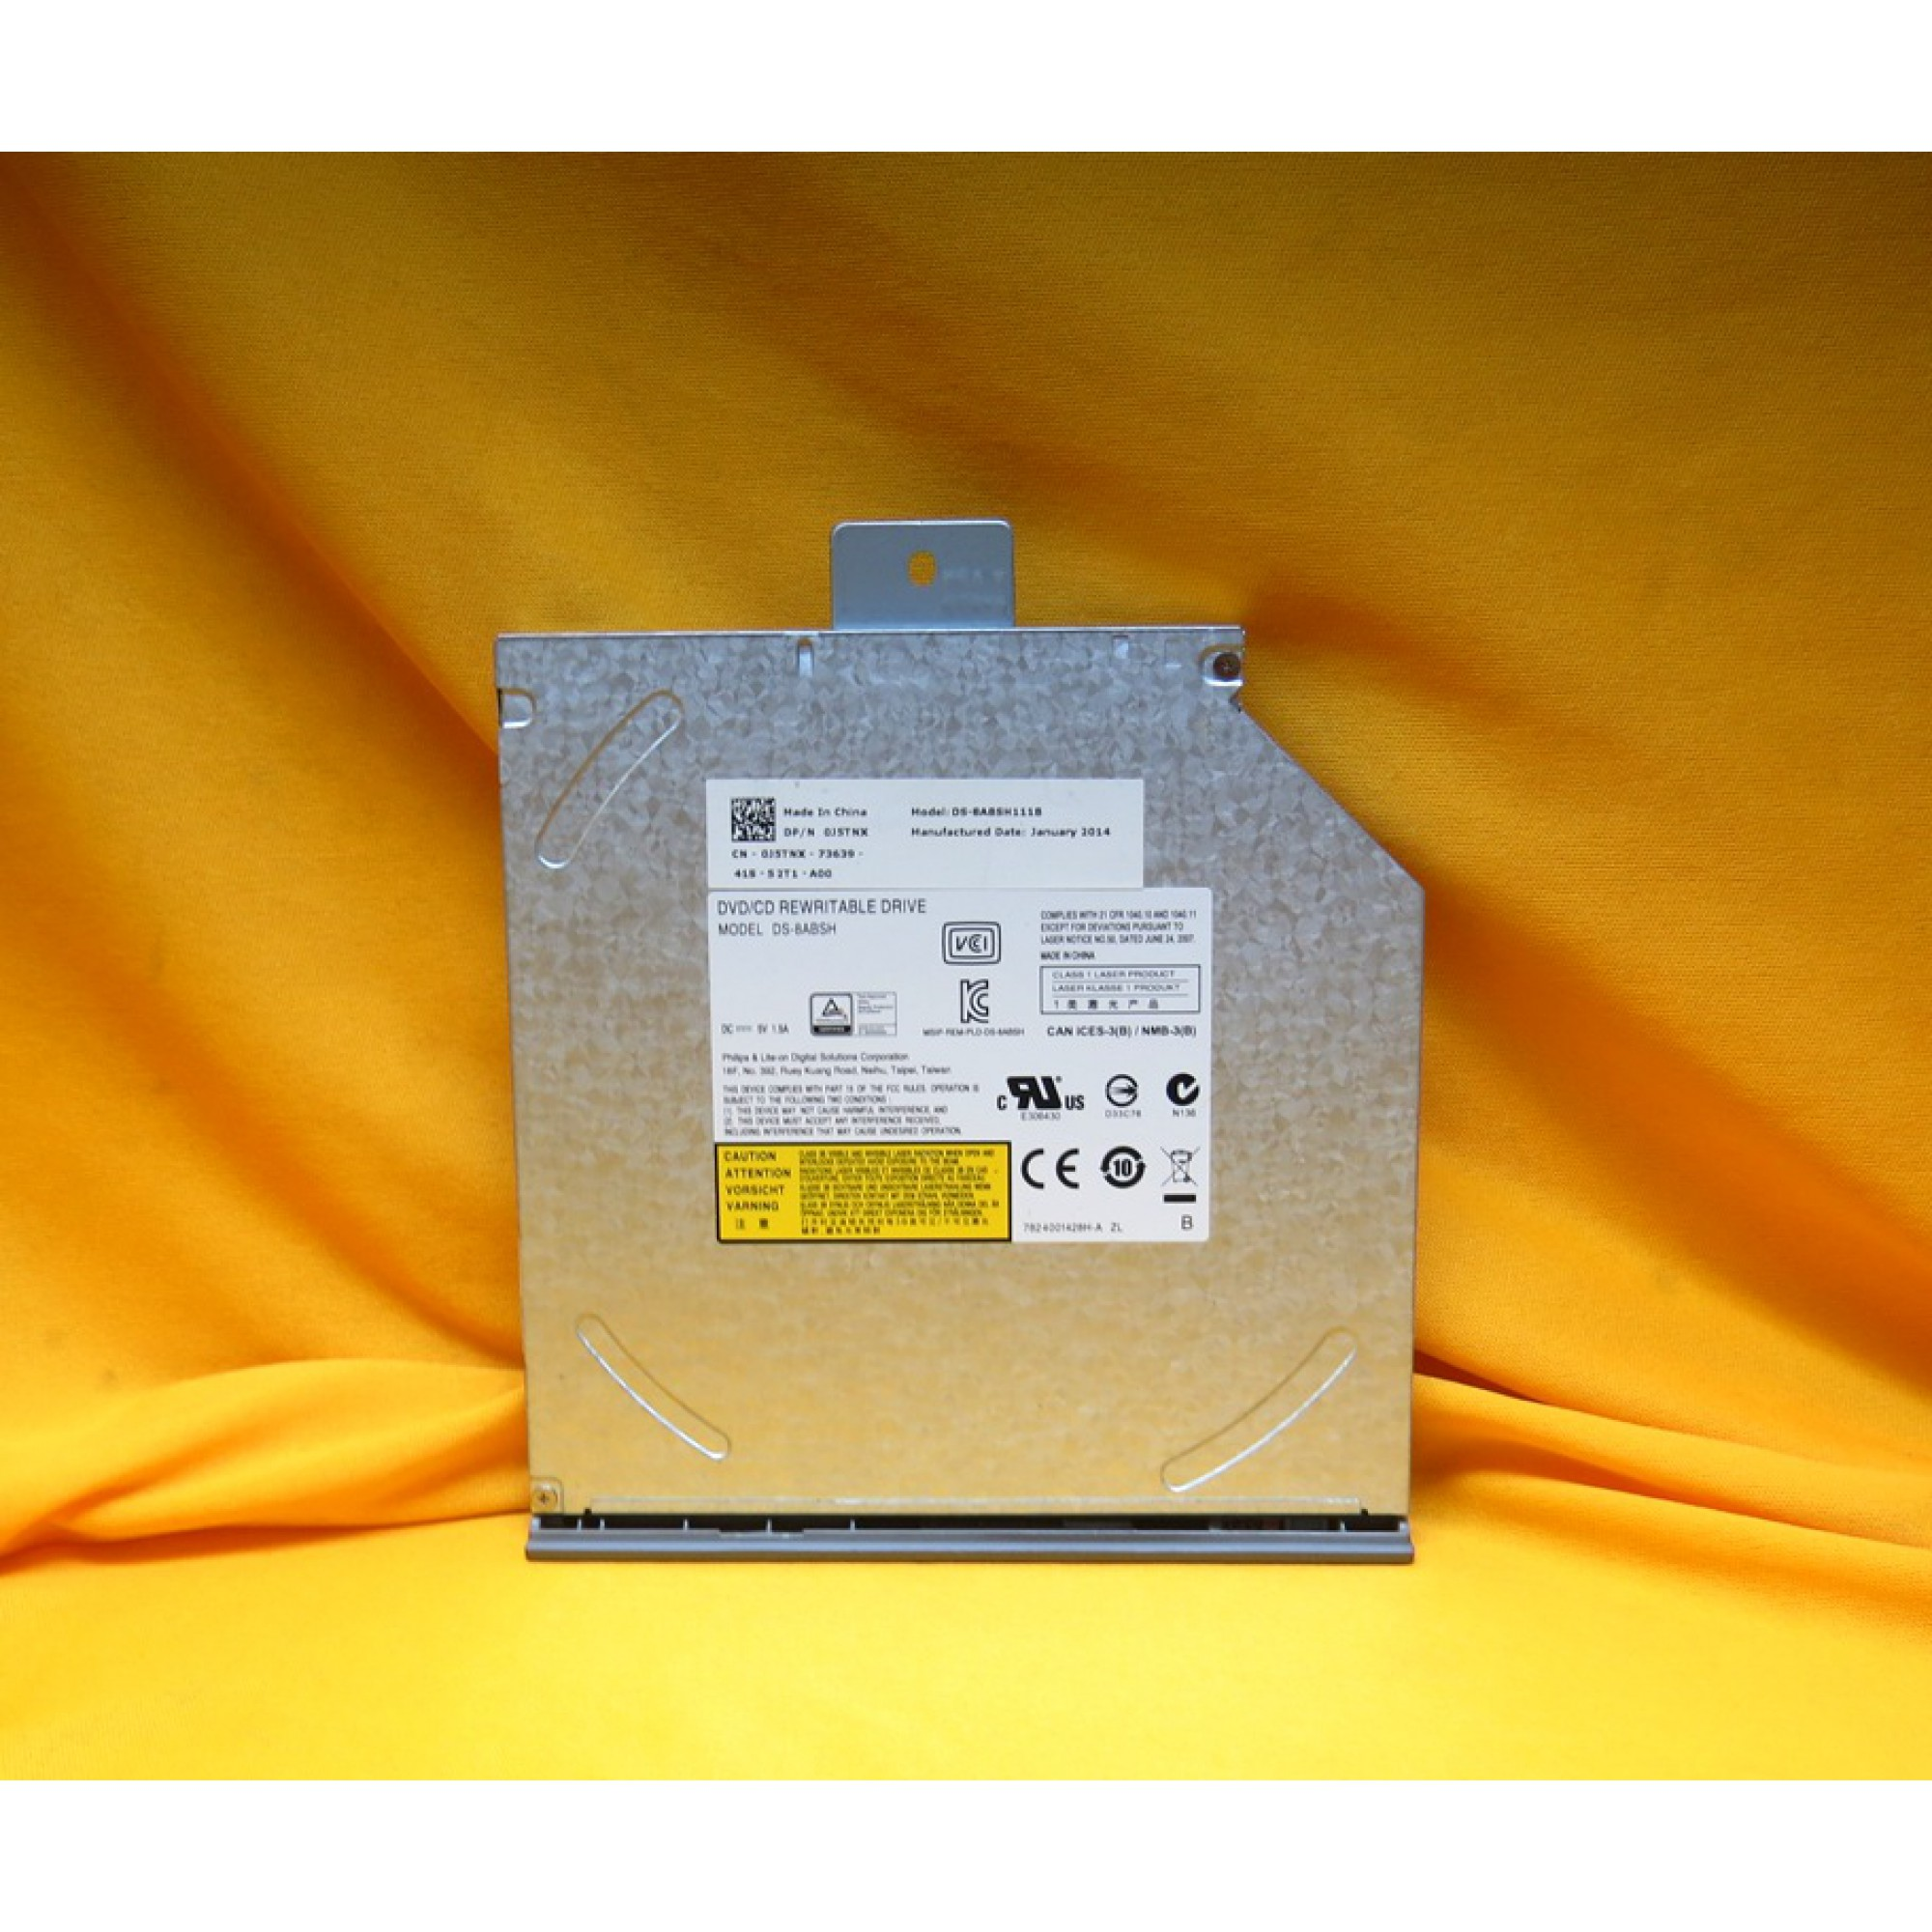 DVD/CD REWRITABLE DRIVE DS-8ABSH IPP6